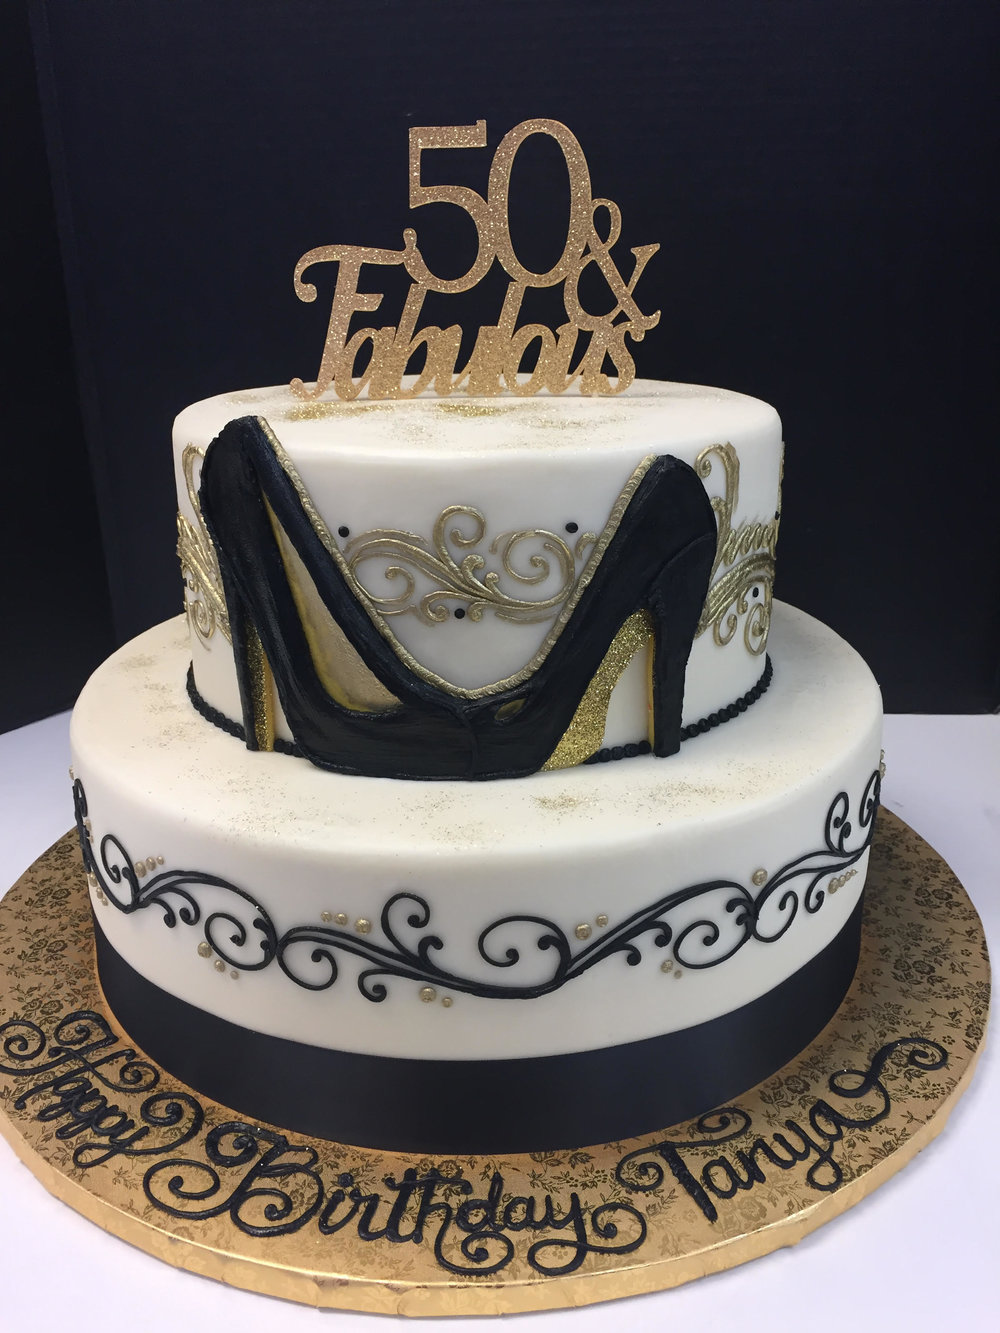 50 And Fabulous Birthday Tier Cake